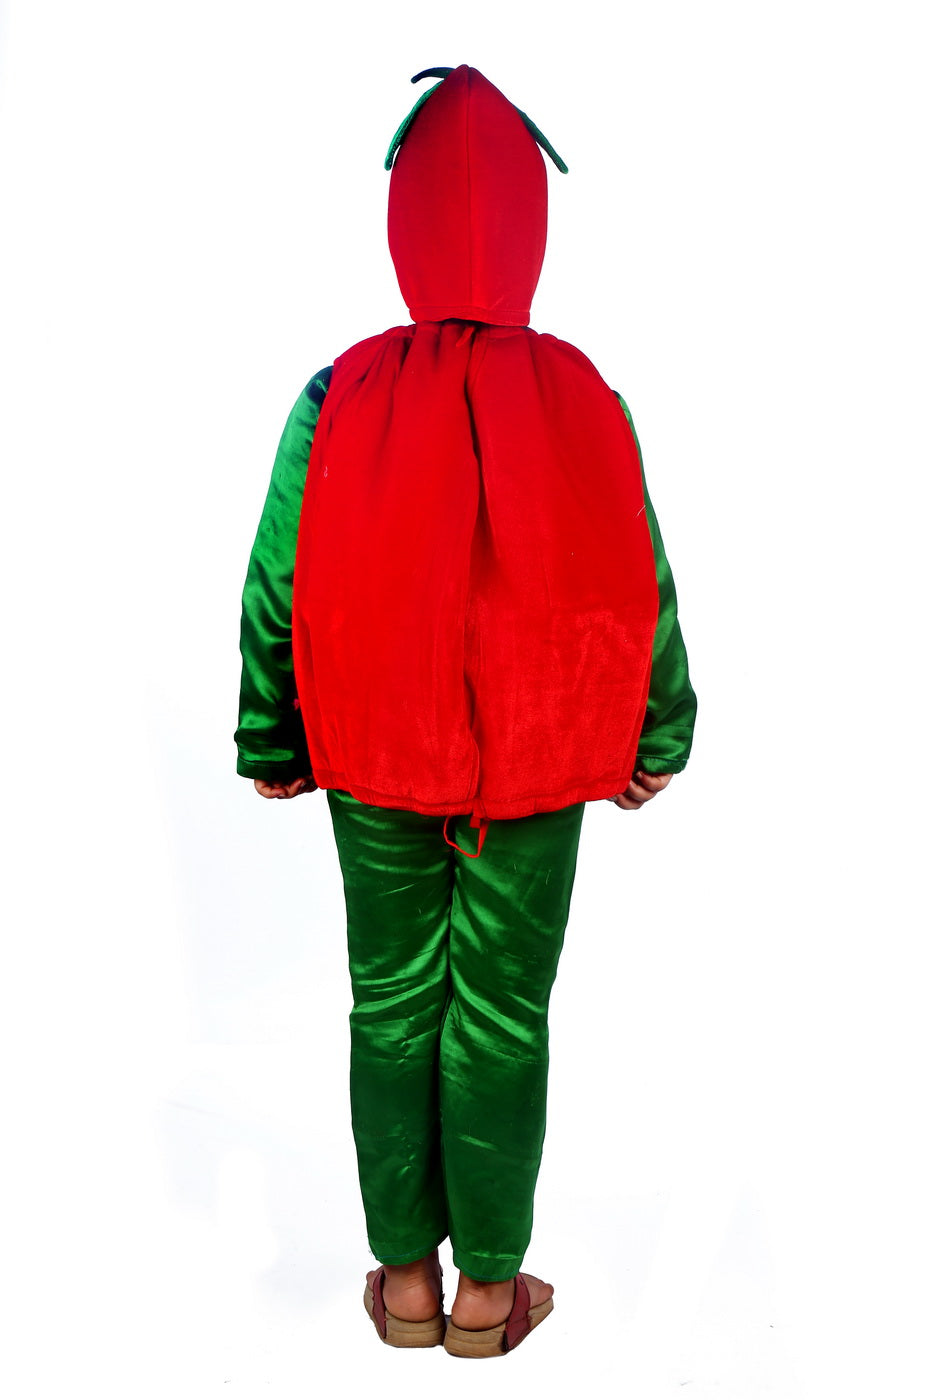 Pomeogranate Fruit Costume